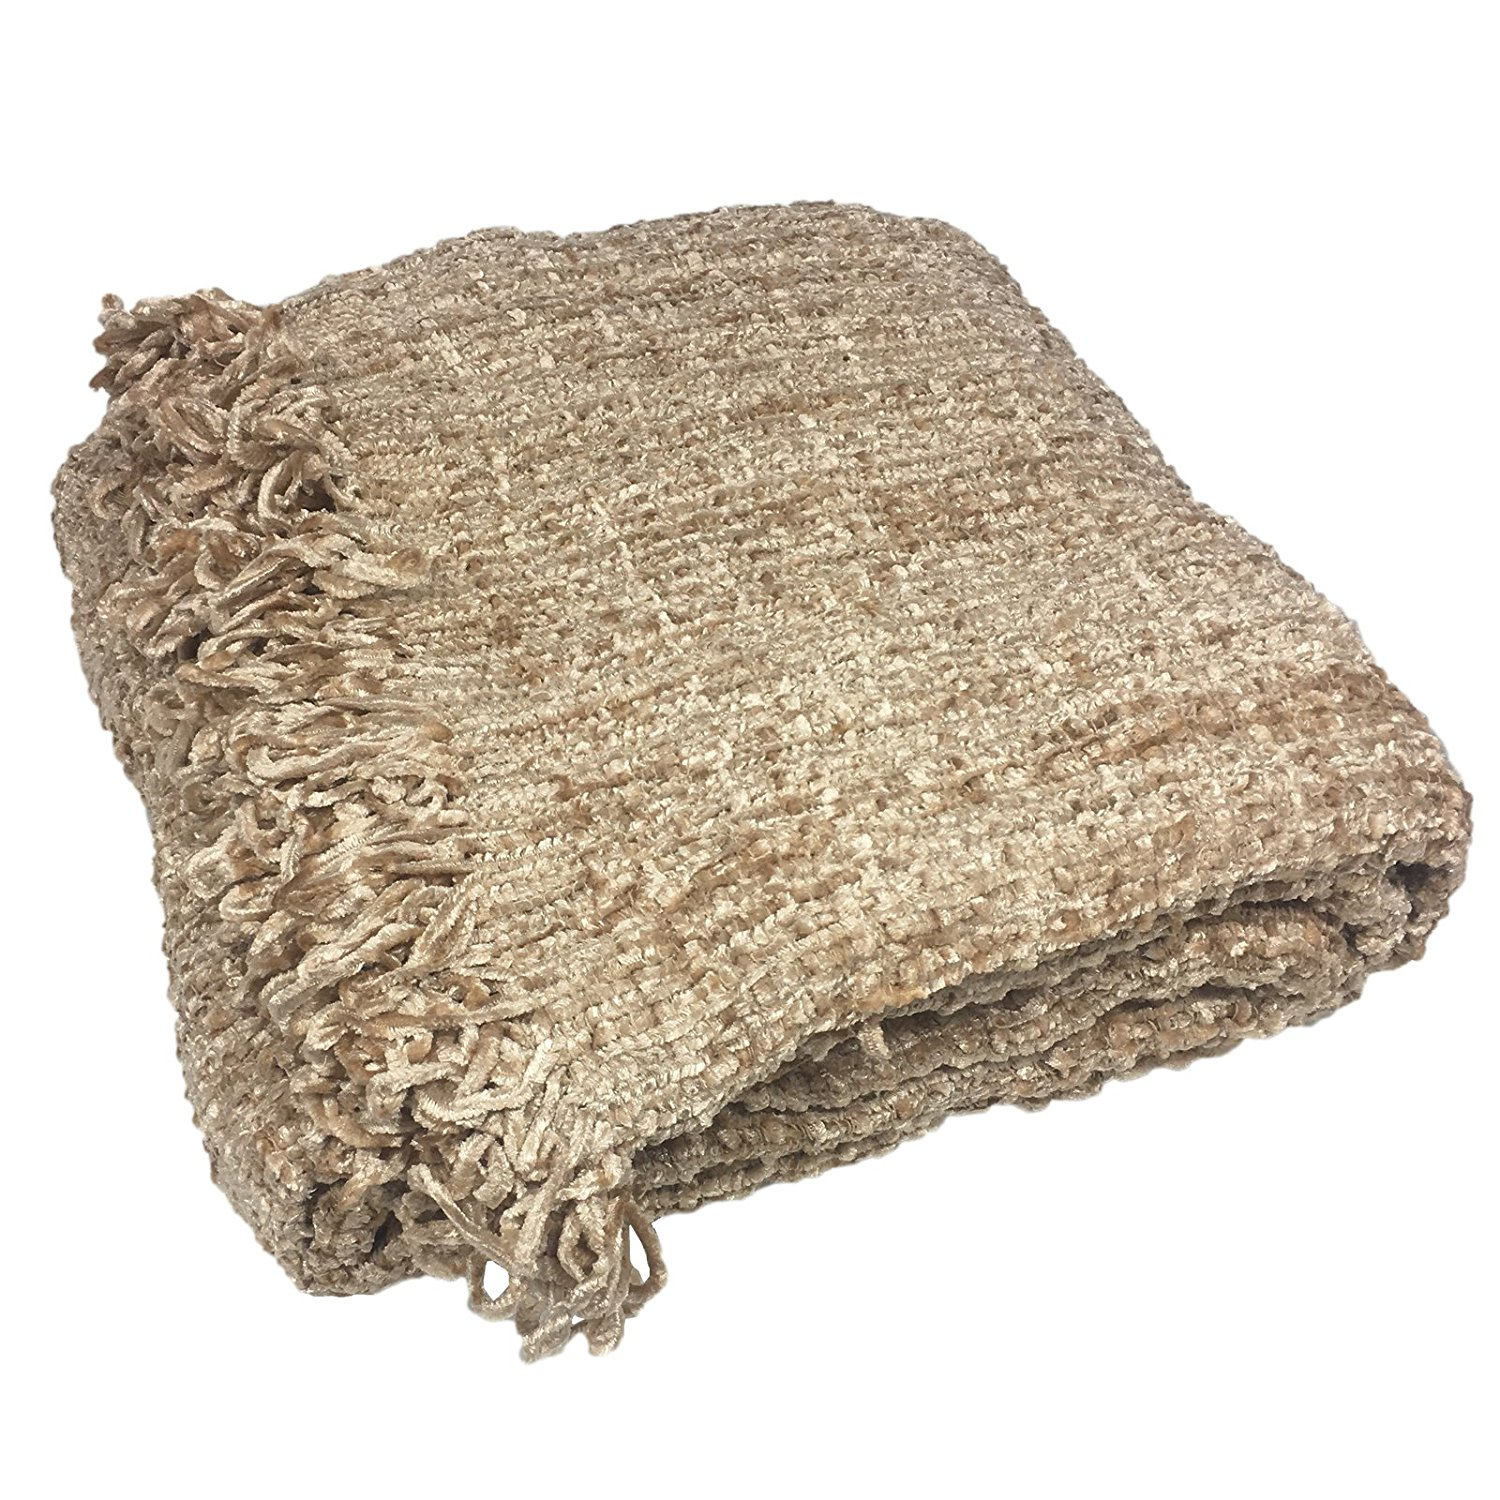 Get Quotations Luxury Chenille Throws Extra Large Thermal Woven Throw Over Sofa Bed Blanket Beige Natural